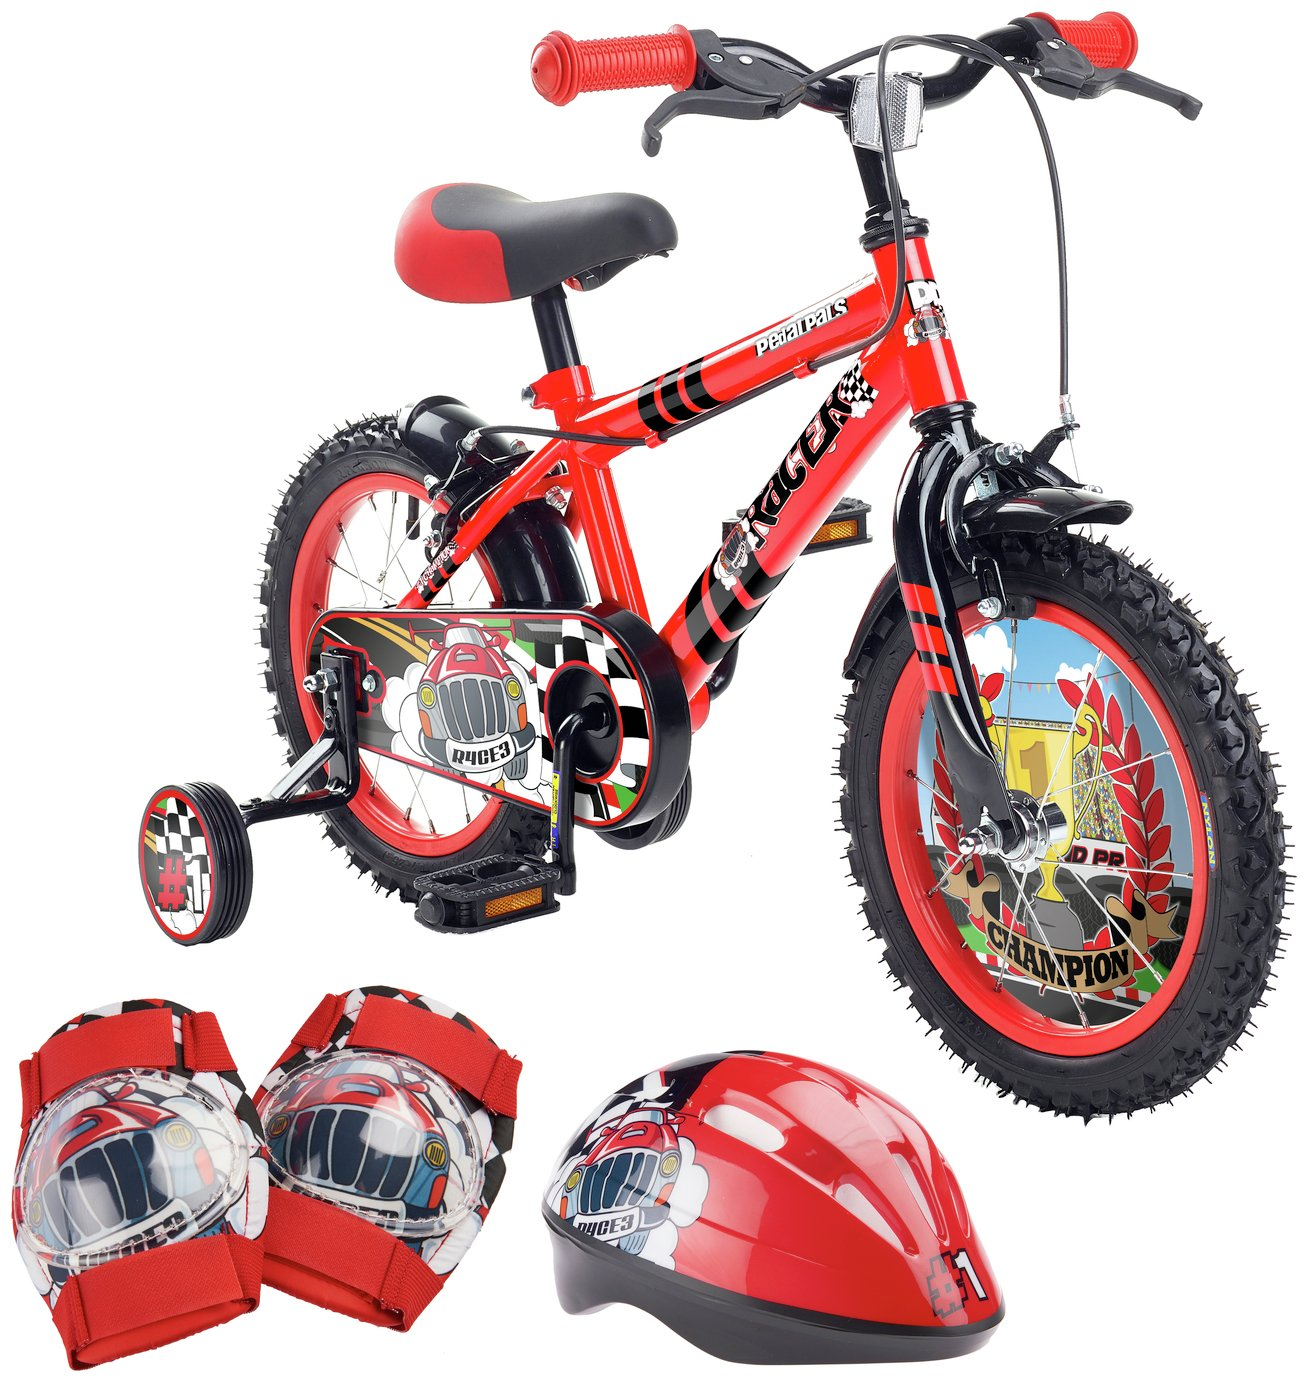 Pedal Pals 14 Inch Racer Kids Bike and Accessories Set